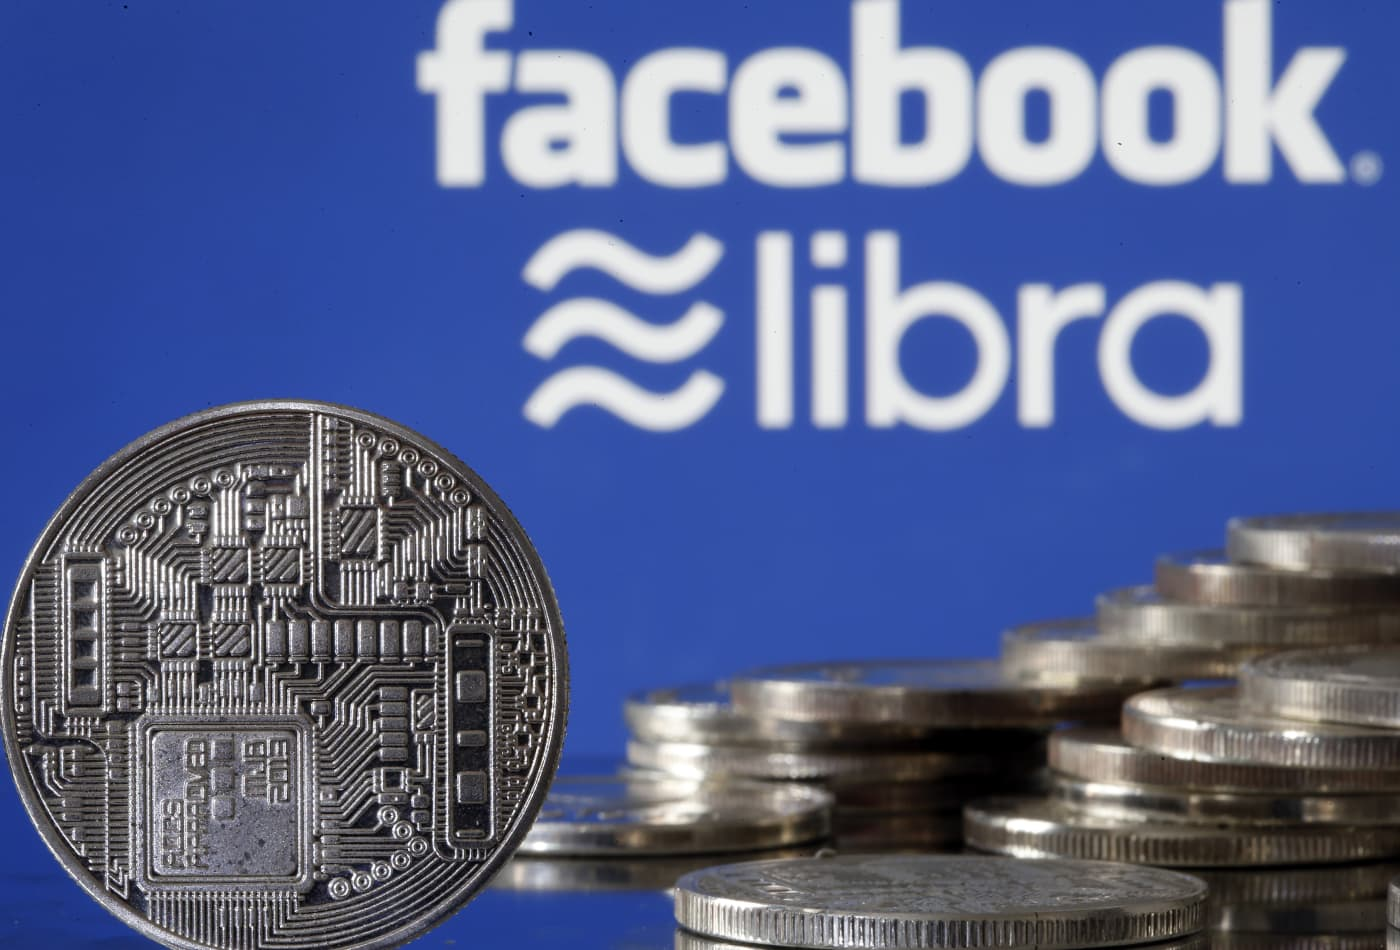 Facebook's Libra consortium is meeting Monday after exodus of key backers